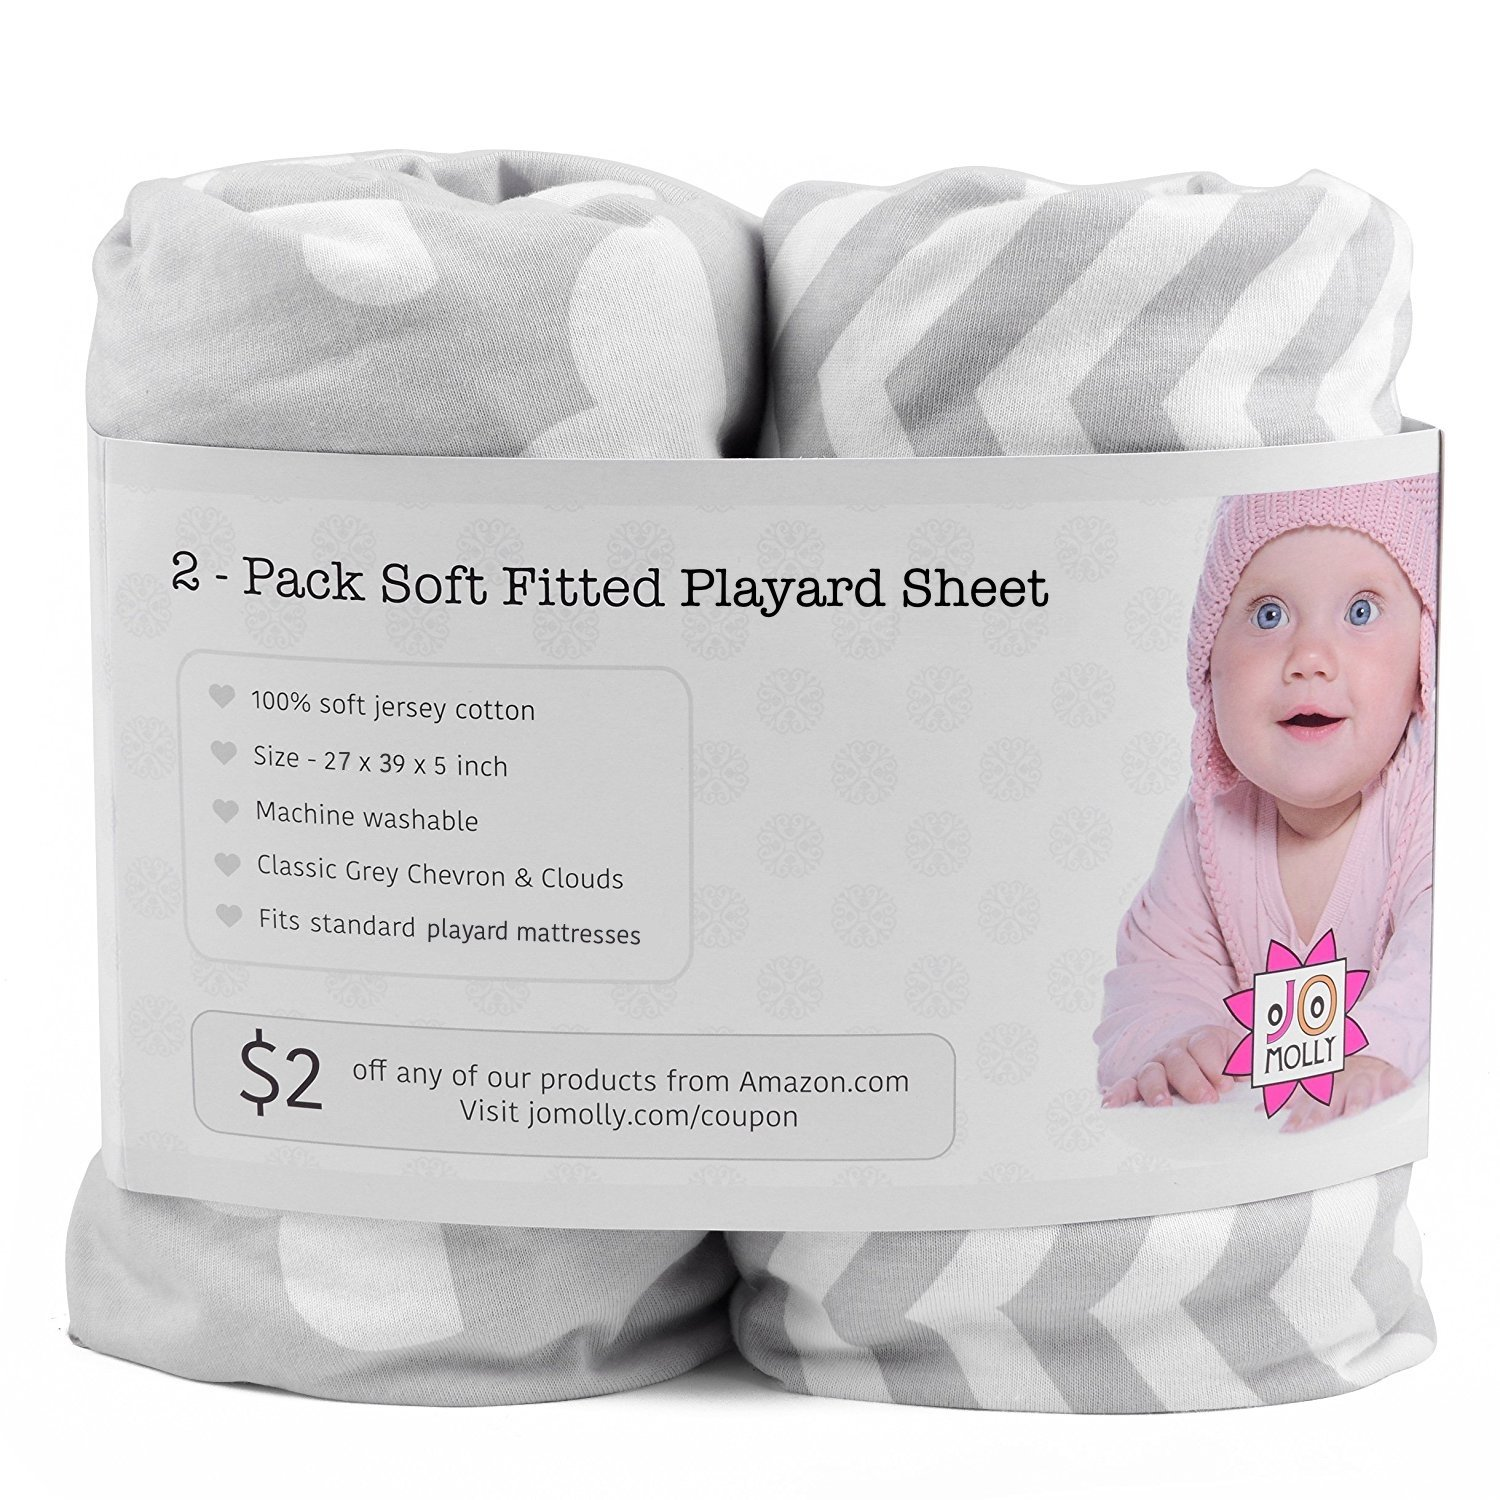 Playard Sheets, 2 Pack Cloud & Chevron Fitted Soft Jersey Cotton Playpen Bedding 71ntC4Su-tL